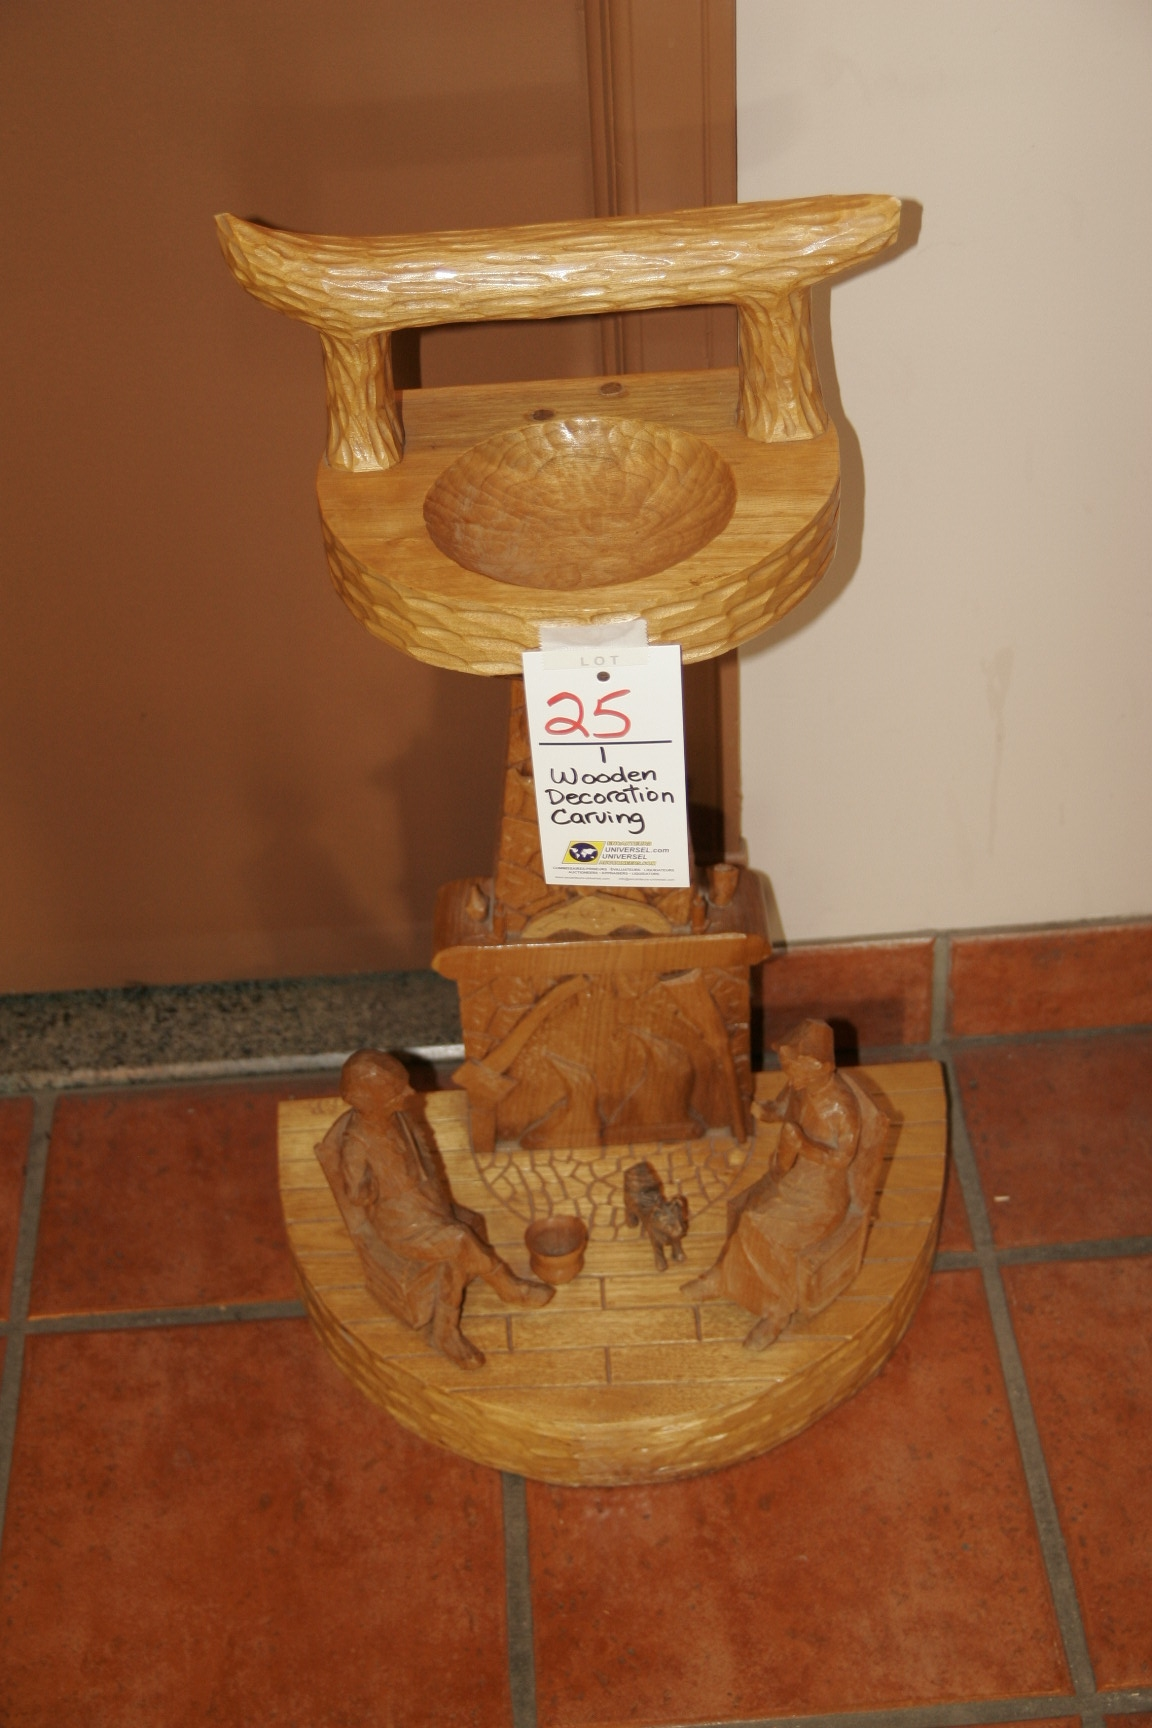 Wooden Decoration Carving